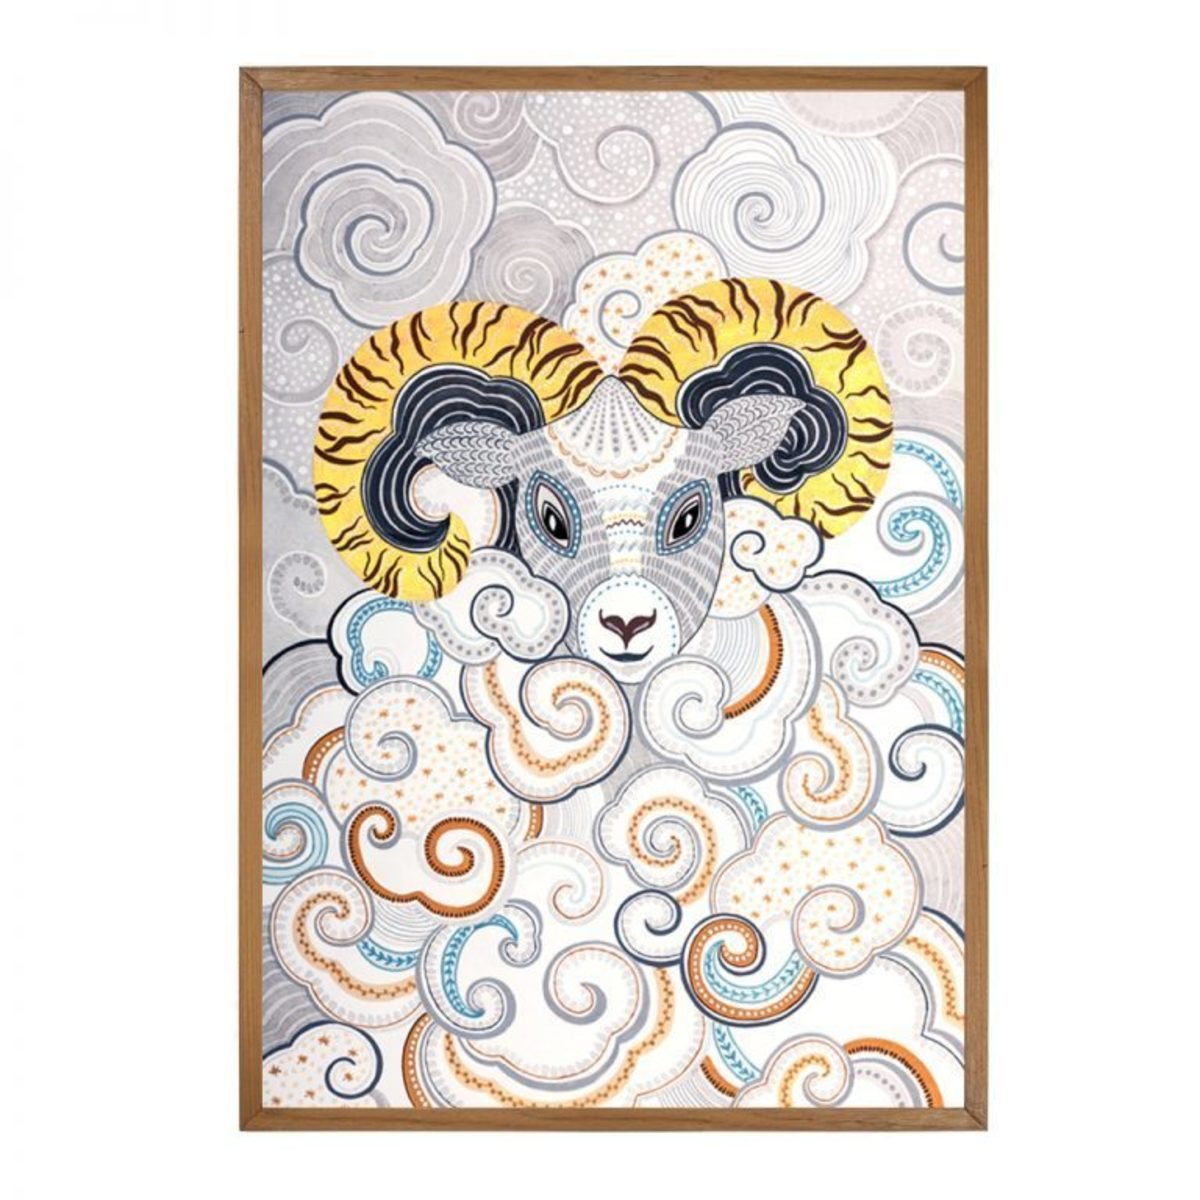 Sheep - Limited Edition Print of 25 (Unframed)